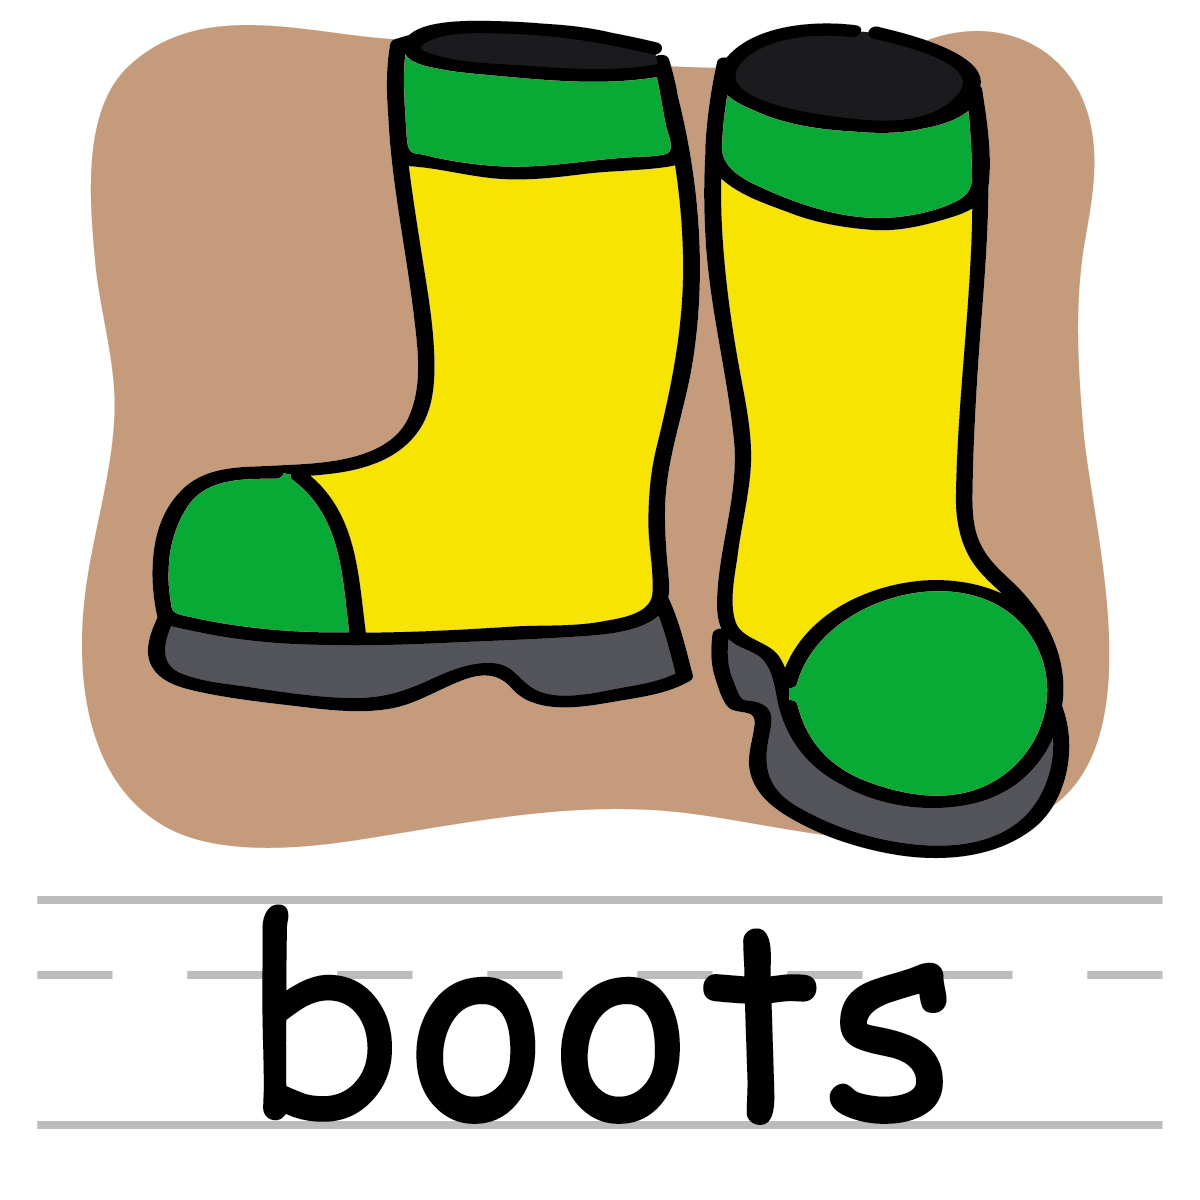 1200x1200 Boots Clipart Rainy Season Clothes